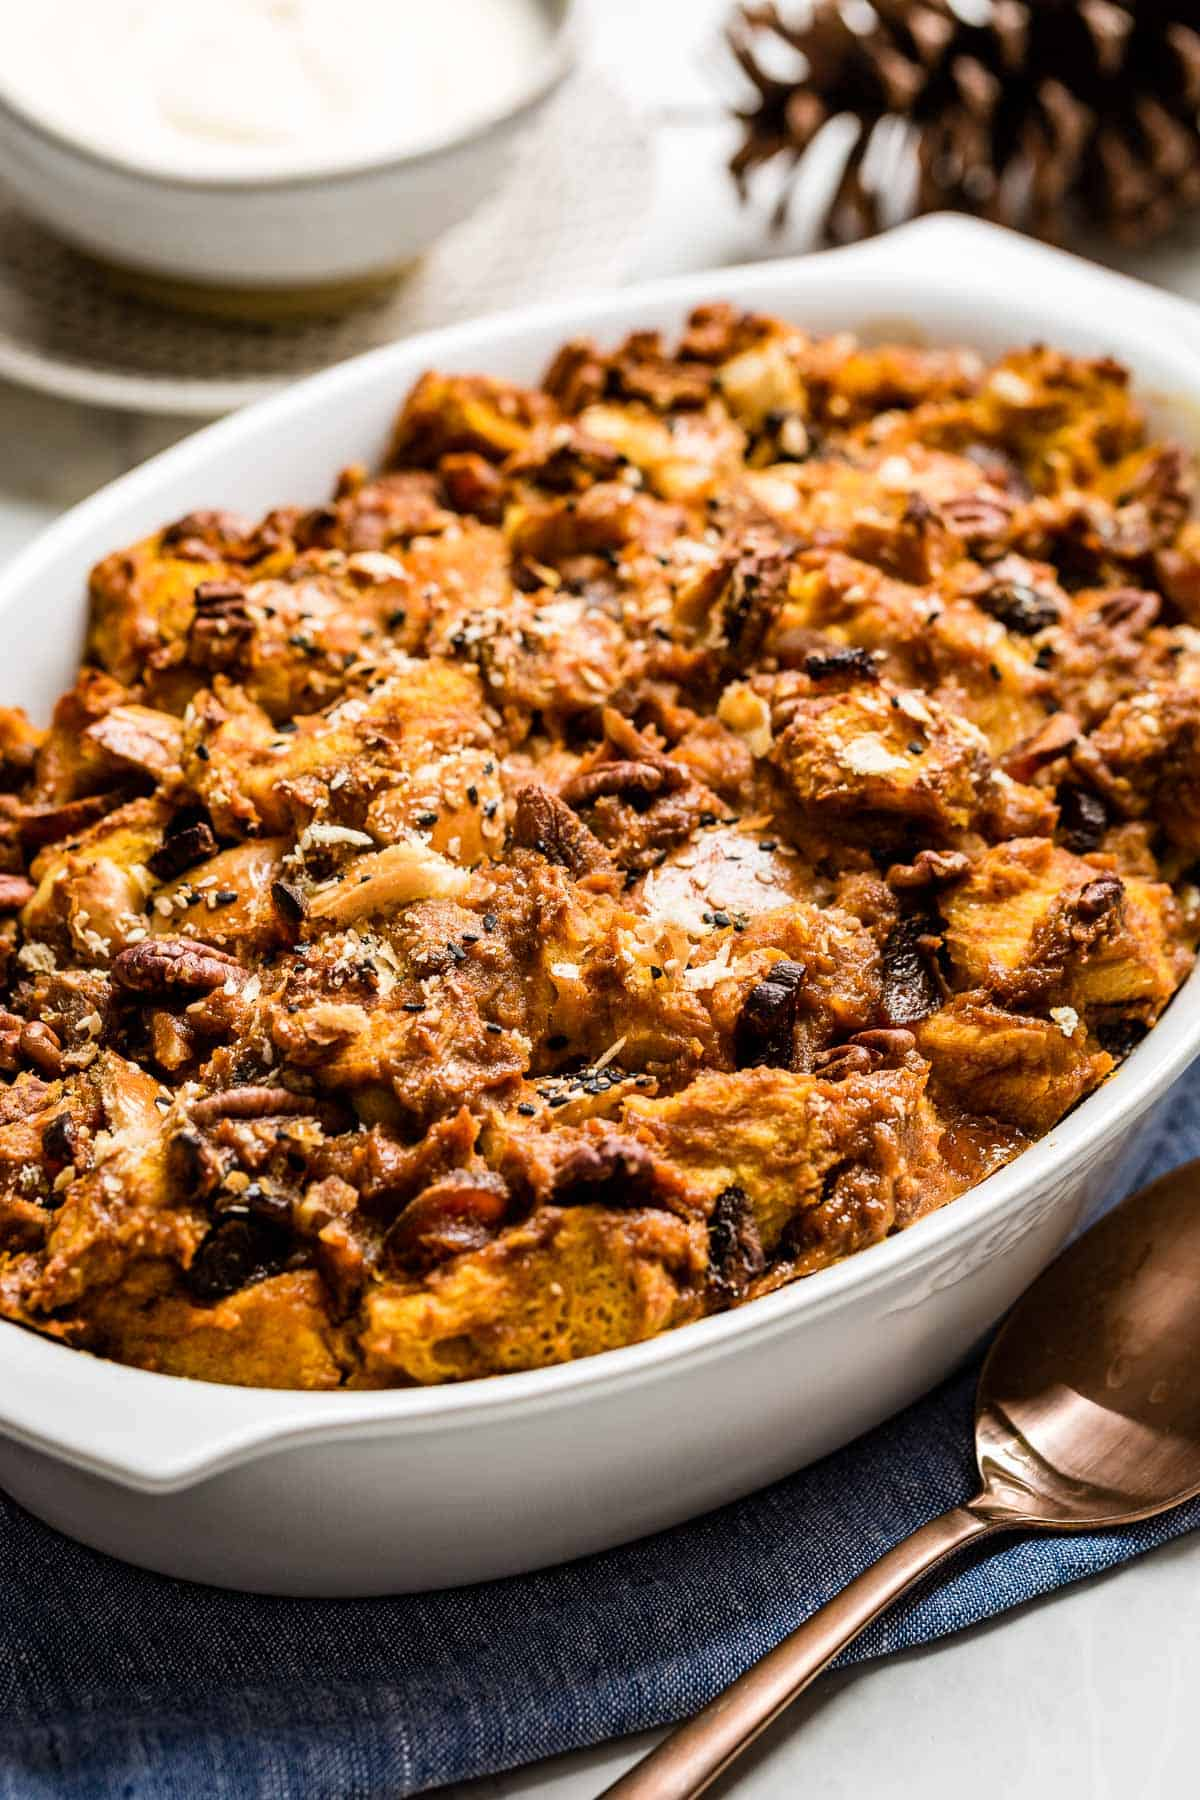 Pumpkin Challah Bread pudding freshly baked in a casserole dish a portion taken out with a bowl of creme fraiche on the side